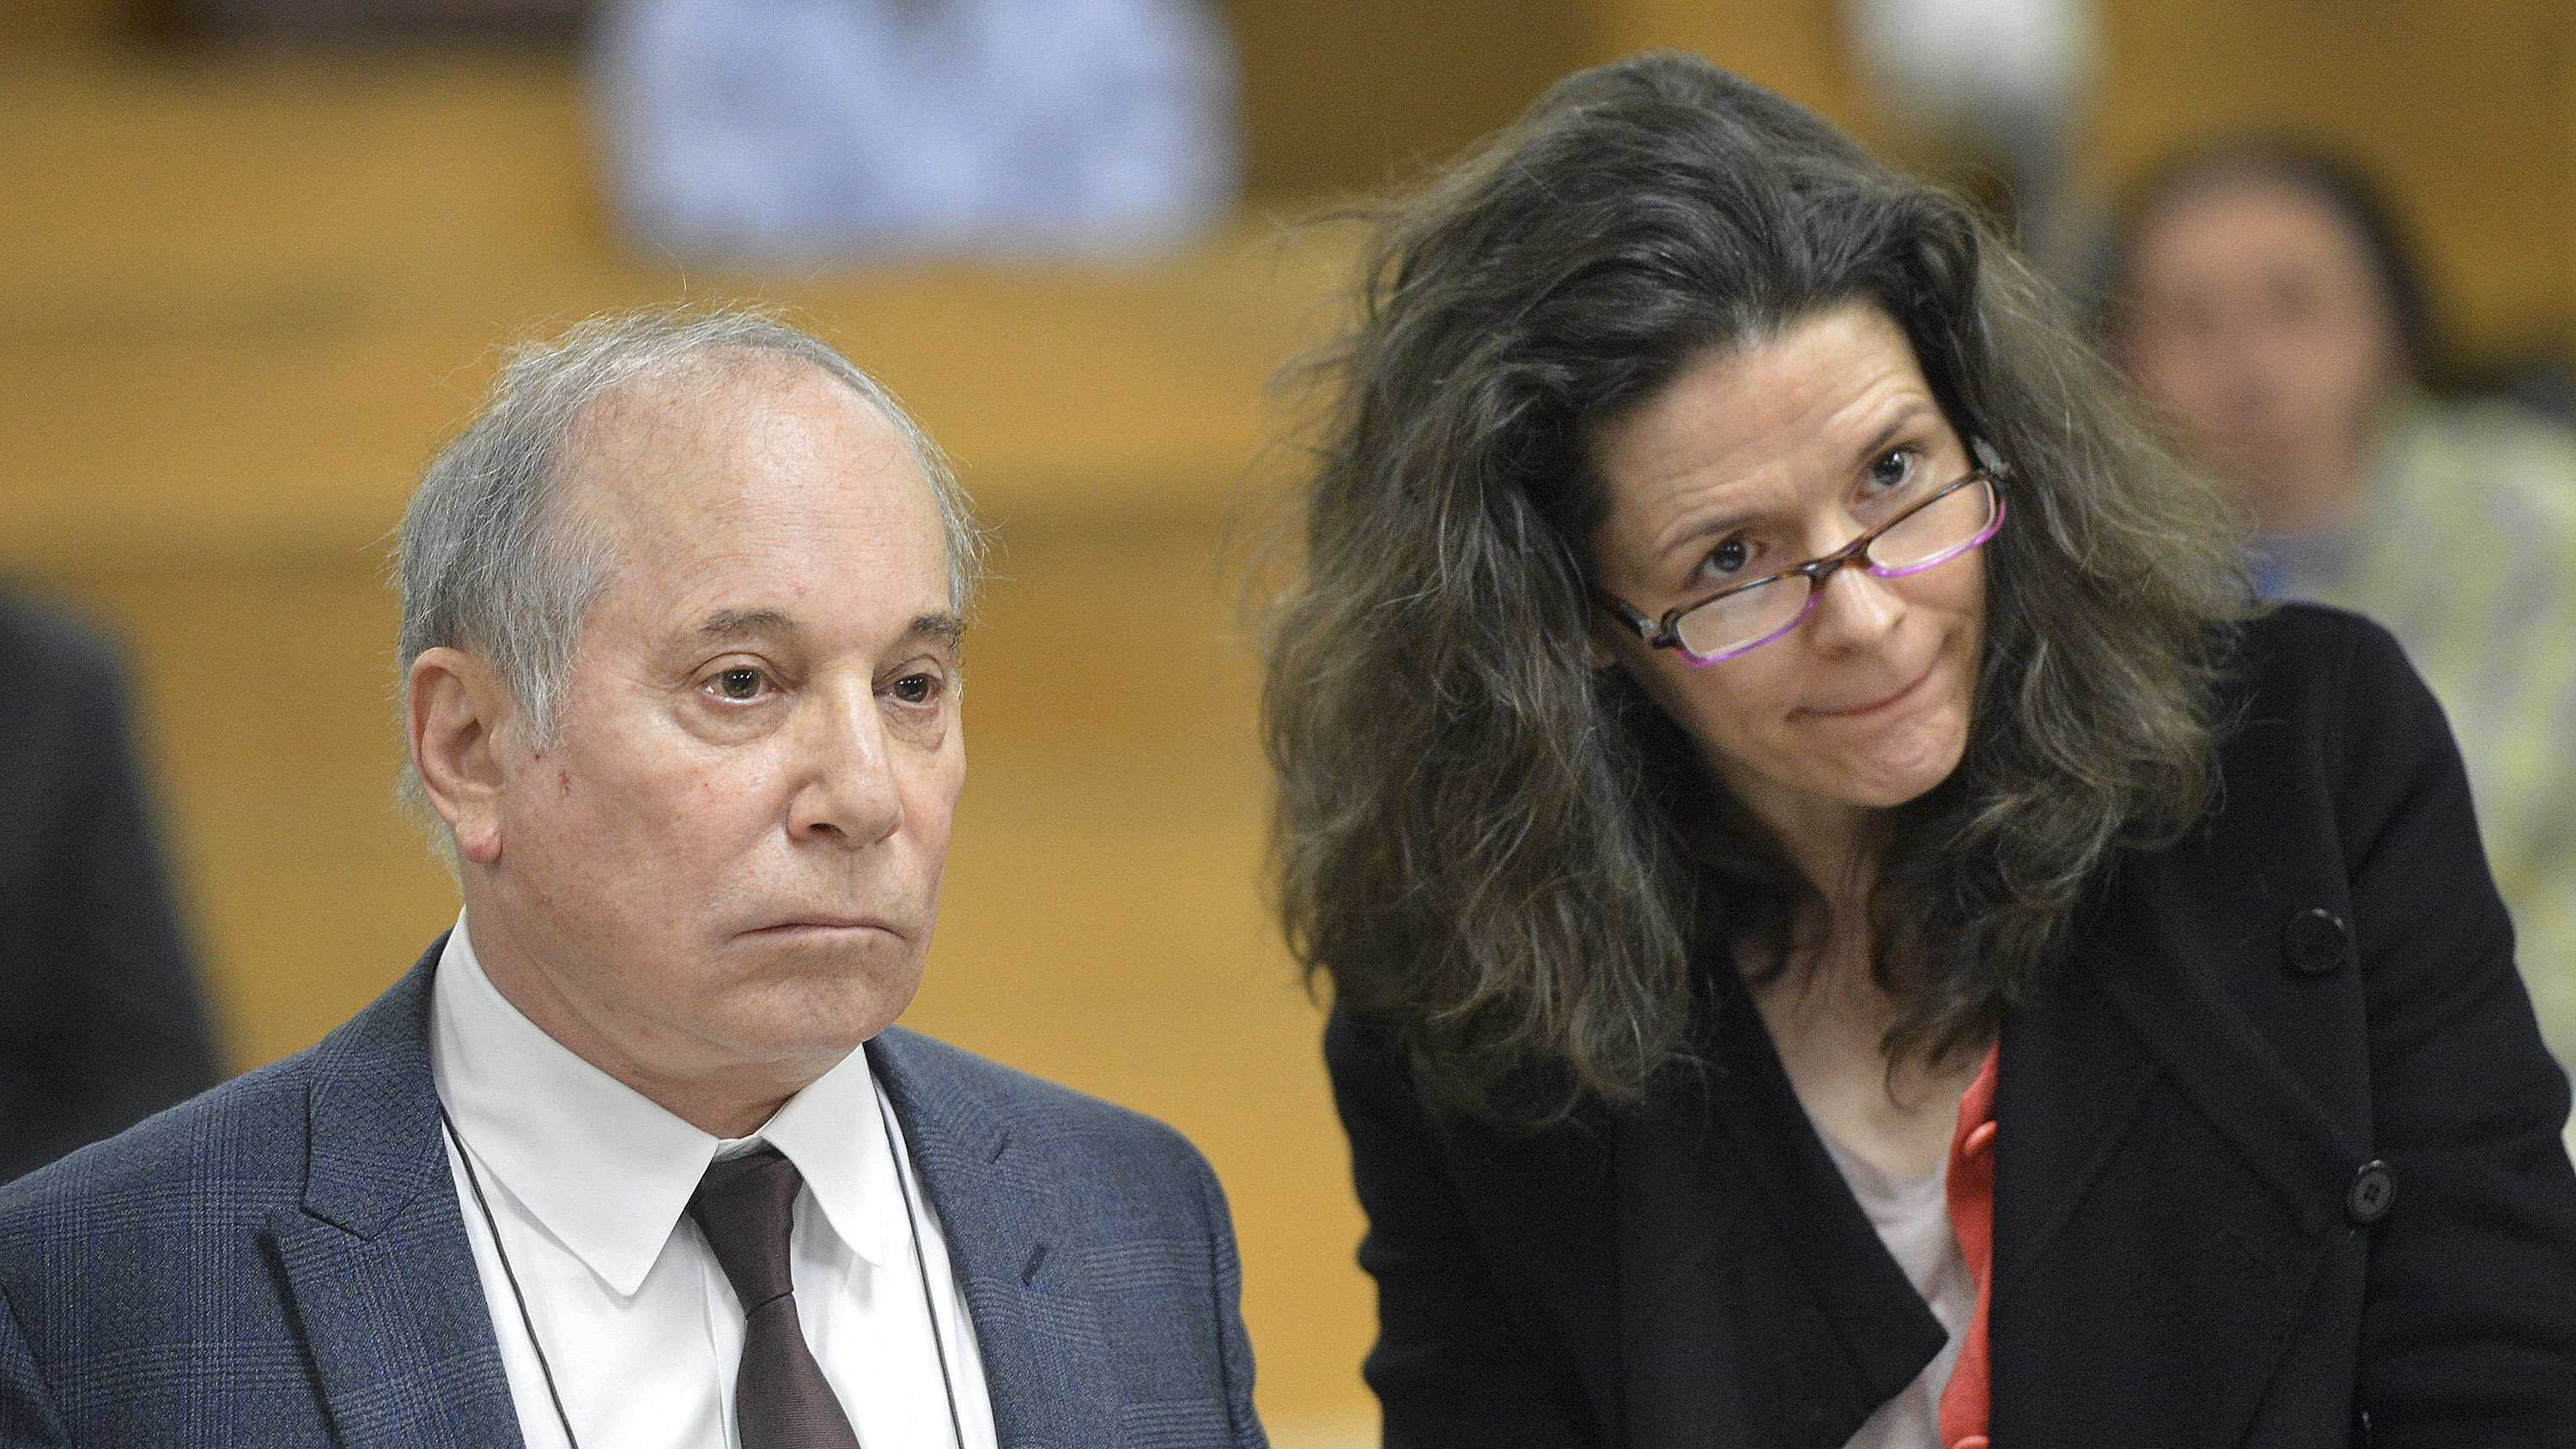 Singer Paul Simon, left, and his wife Edie Brickell appear at a hearing in Norwalk Superior Court on Monday April 28, 2014 in Norwalk, Conn.